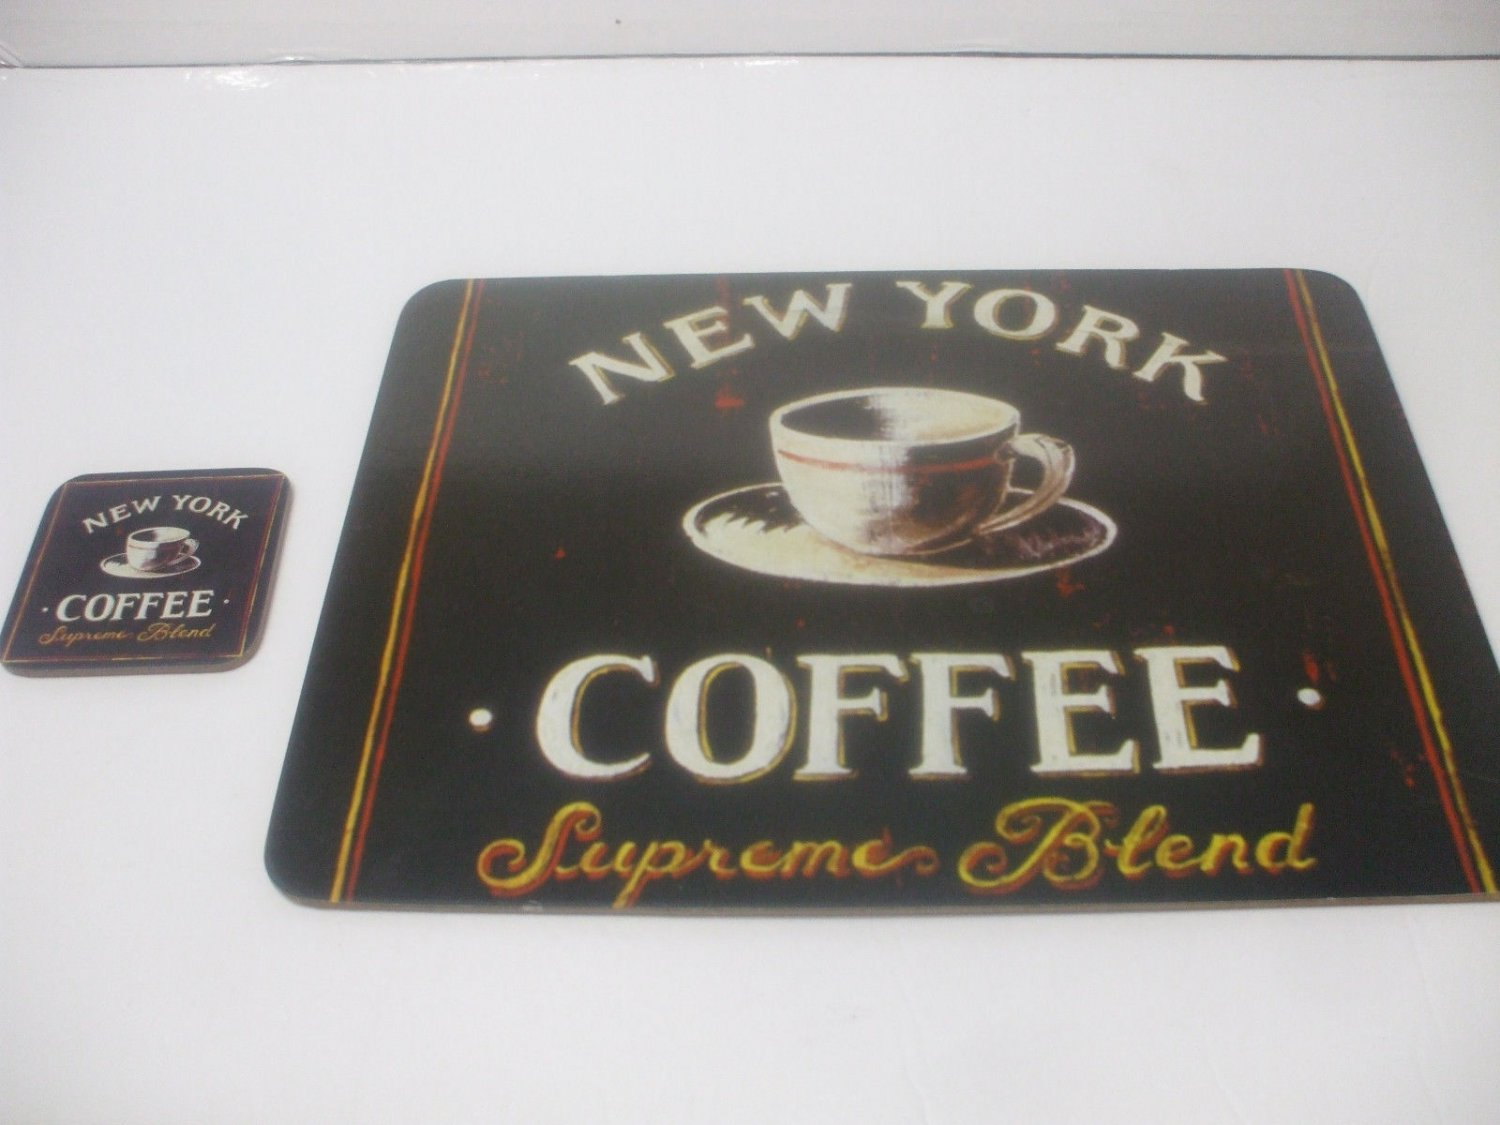 Shabby Chic Corkboard Placemat And Coaster 15 Inches X 13 Inches New York Coffee Supreme